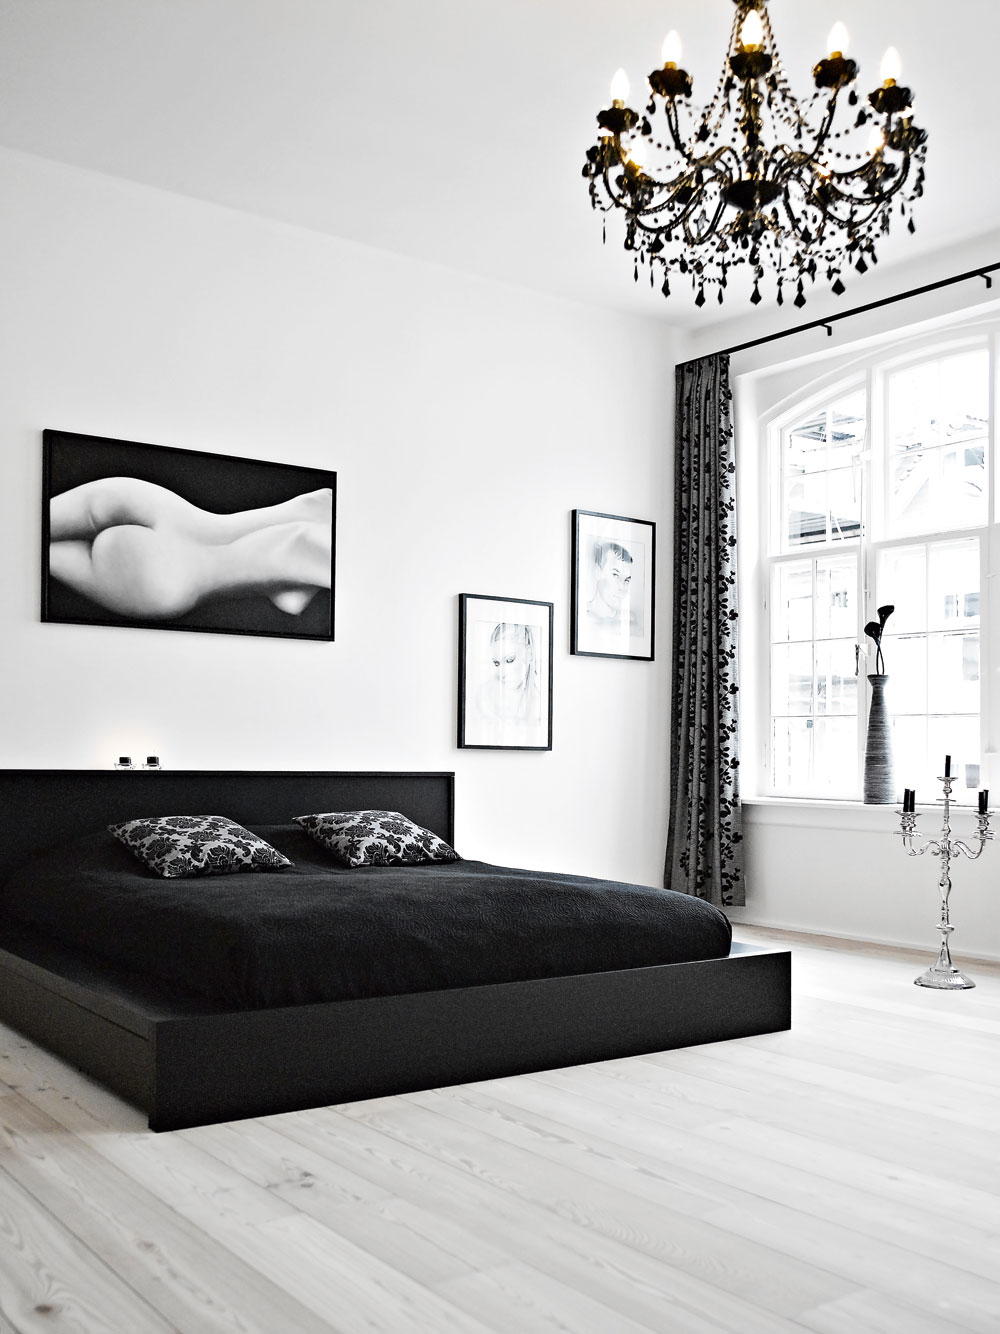 Attractive Black And White Room Design Ideas Part - 1: Interior Design Ideas